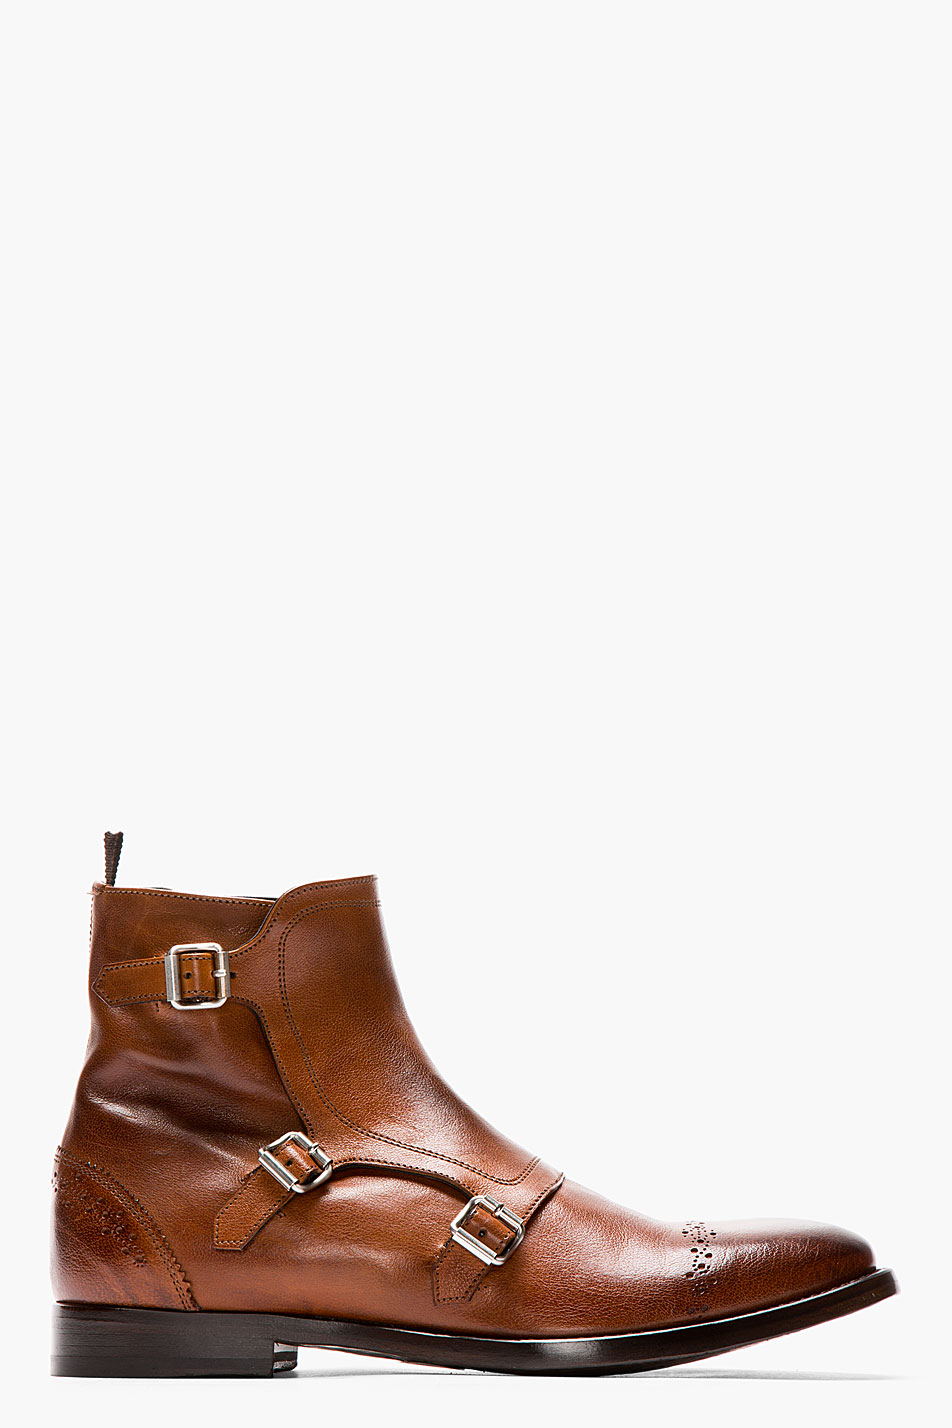 mcqueen brown leather brogued monk strap boots